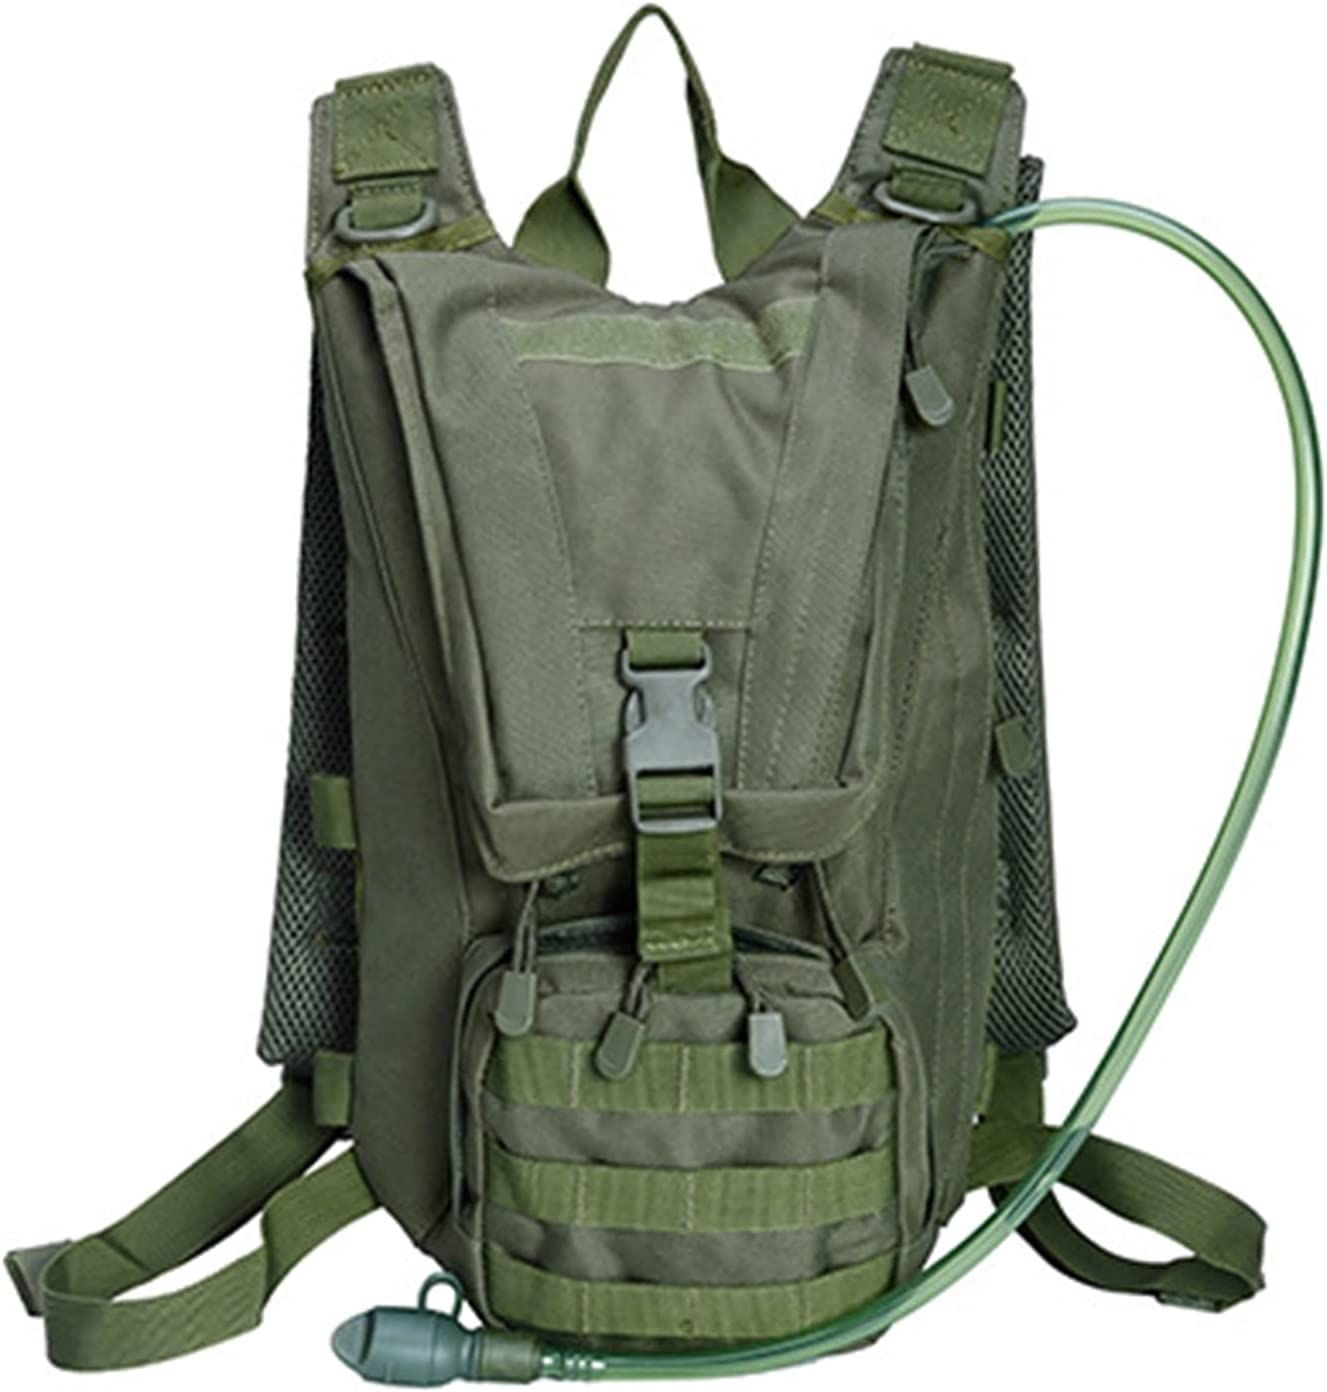 Chicago Mall Hydration Bladder Tactical Backpack Indianapolis Mall Wat Pack 2.5L with